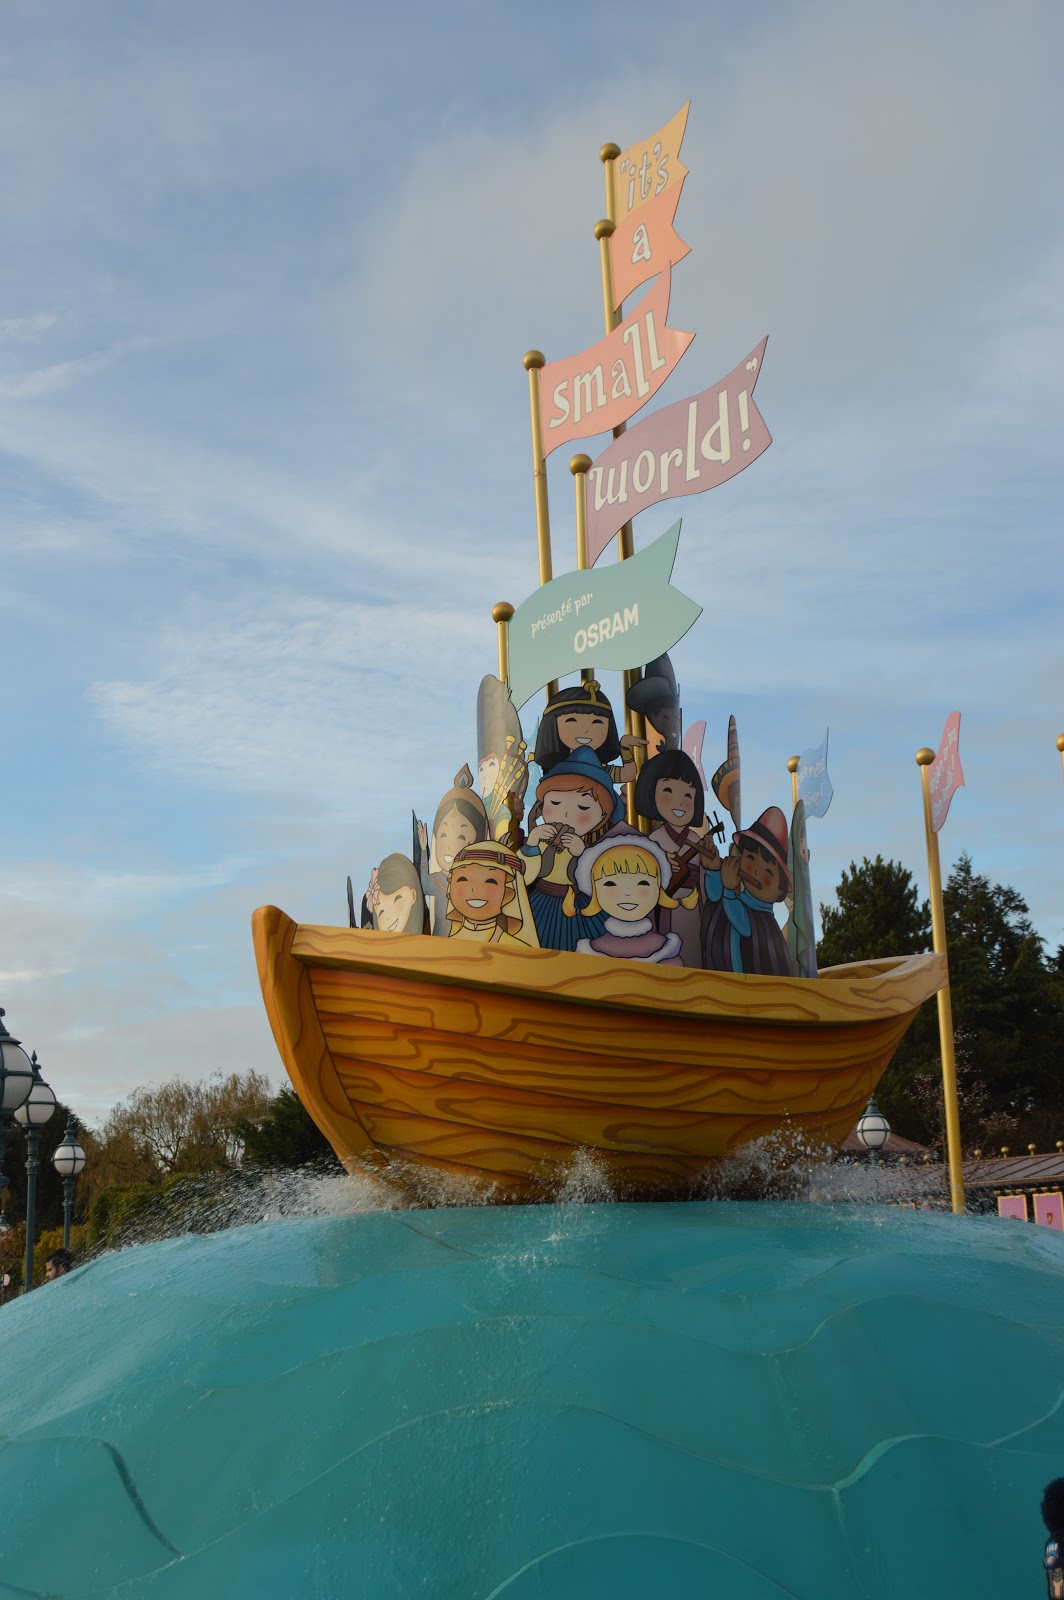 Its a small world ride at Disneyland Paris